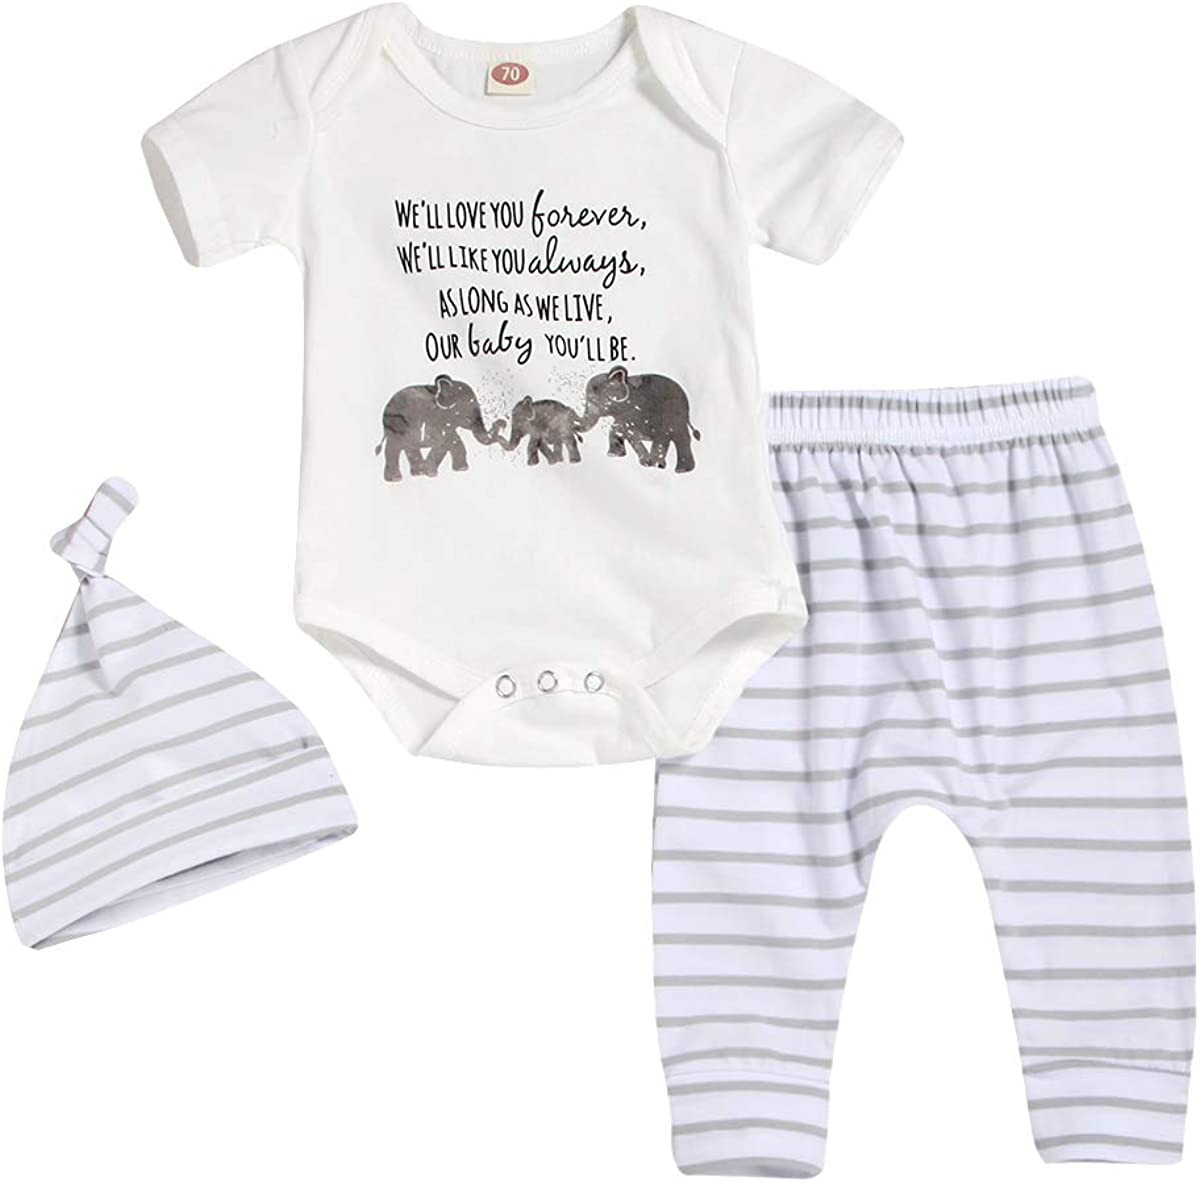 Top 10 Baby Boy Coming Home Summer Outfit